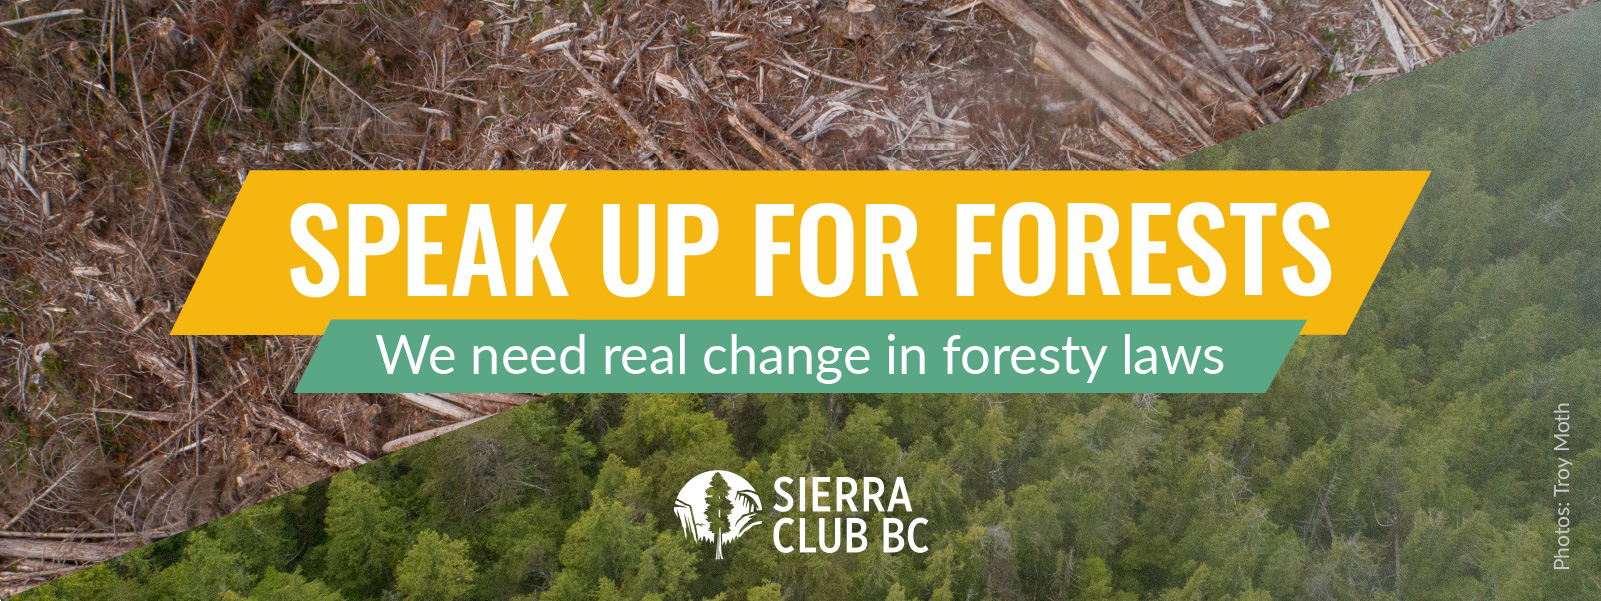 Speak up for forests